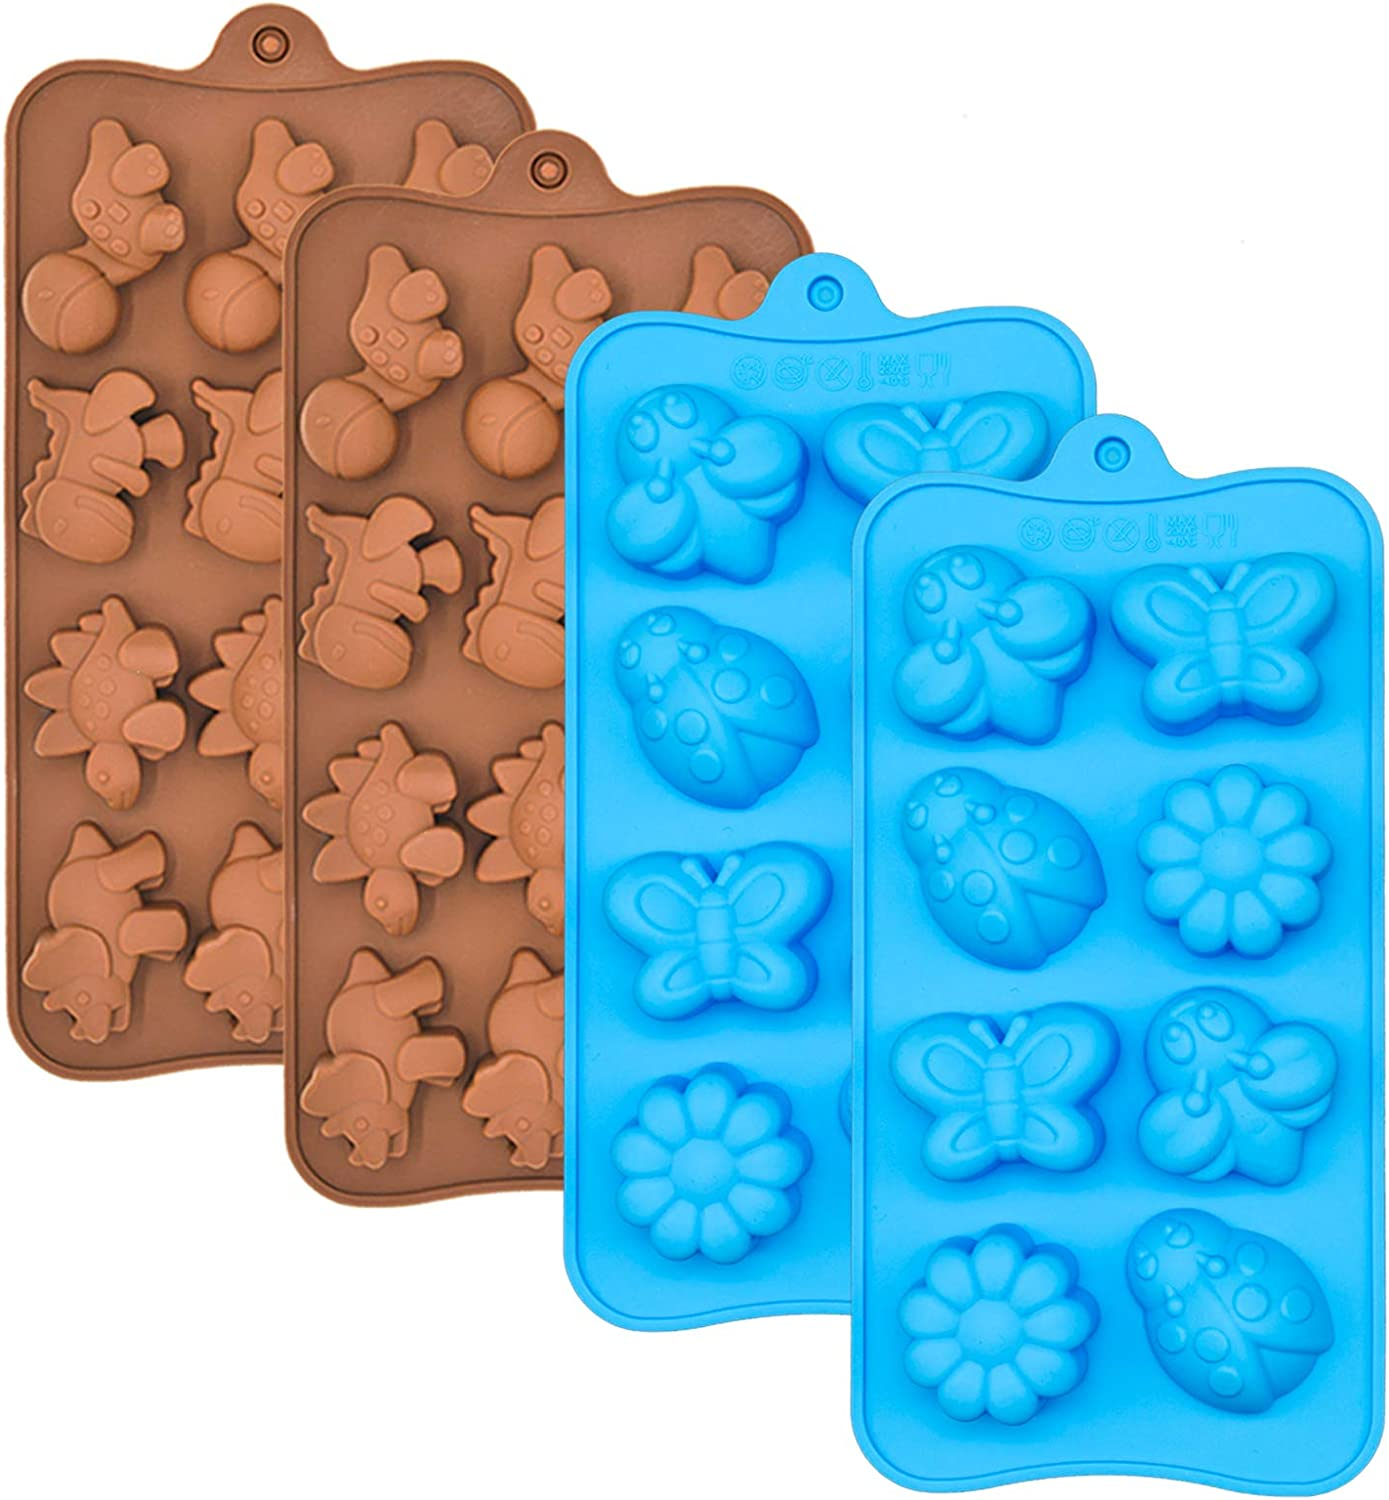 Silicone Chocolate Candy Molds, Non-stick Animal Silicone Baking Mold Making Kit - BPA Free, Forest Theme with Different Animals, including Dinosaurs, Butterfly and Flower, Set of 4